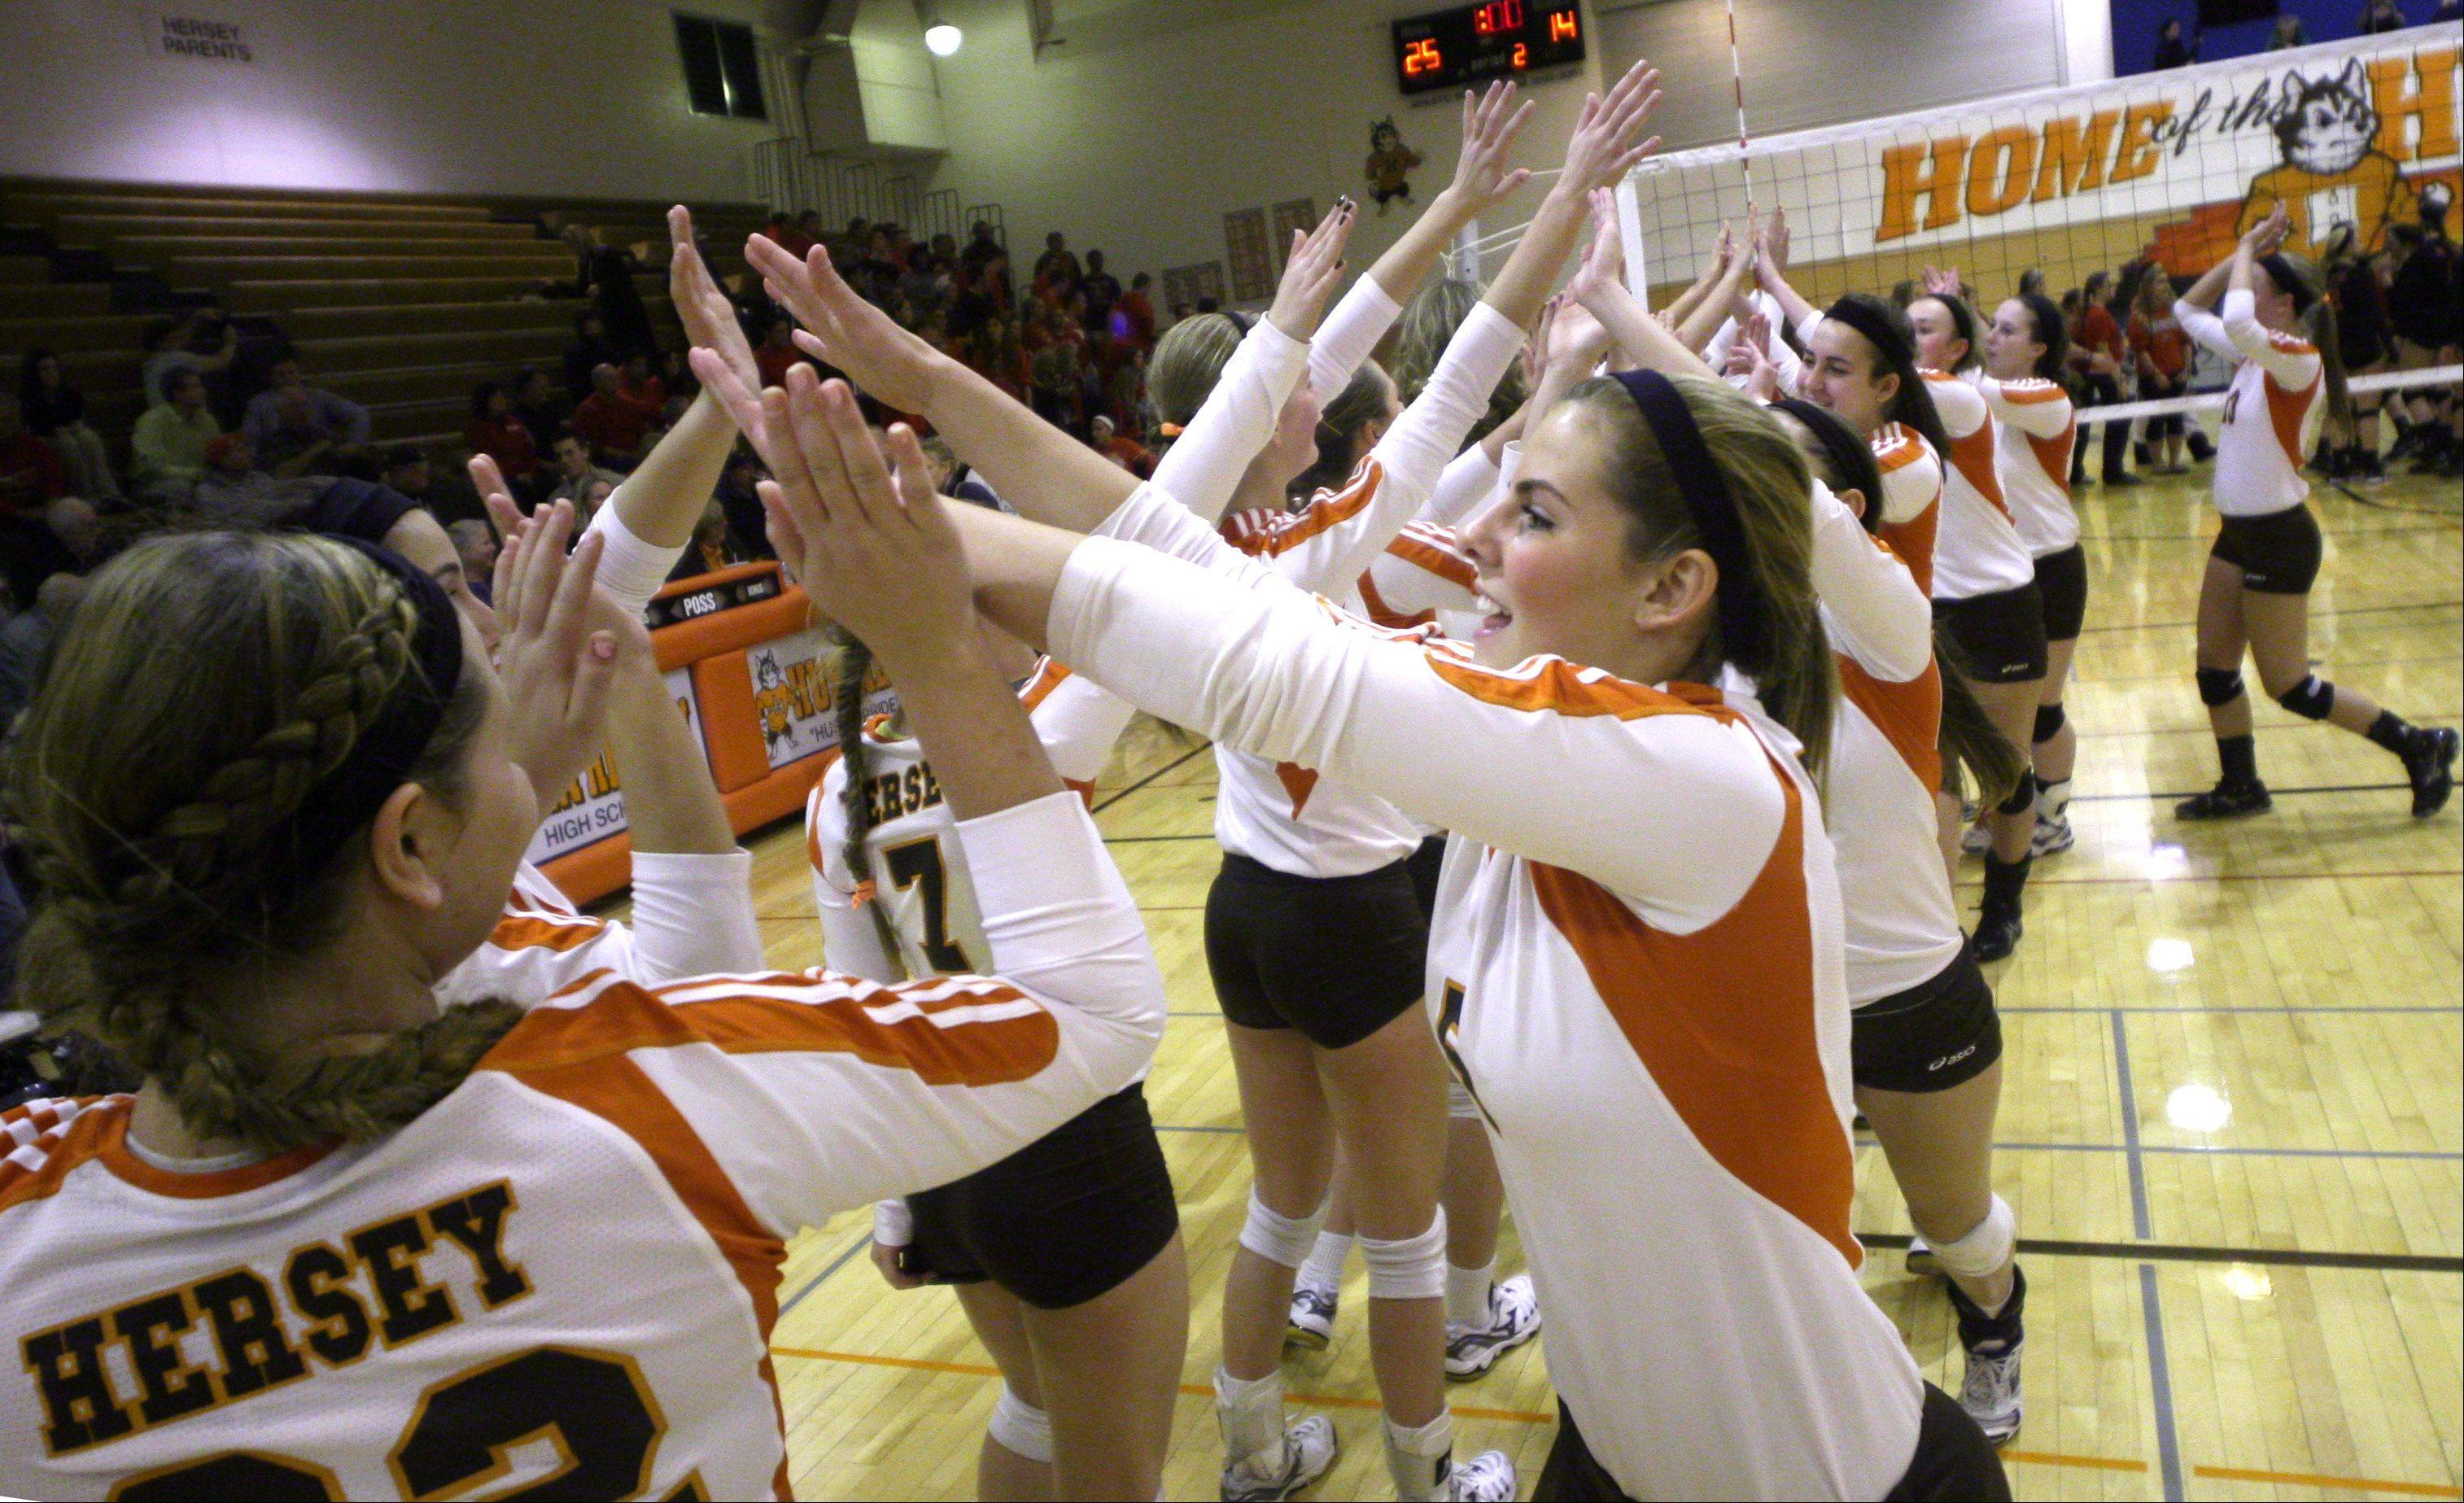 The Hersey Huskies, including Michelle Brown, center, begin a celebration after knocking off Palatine in the Mid-Suburban League championship volleyball game in Arlington Heights on Thursday night.